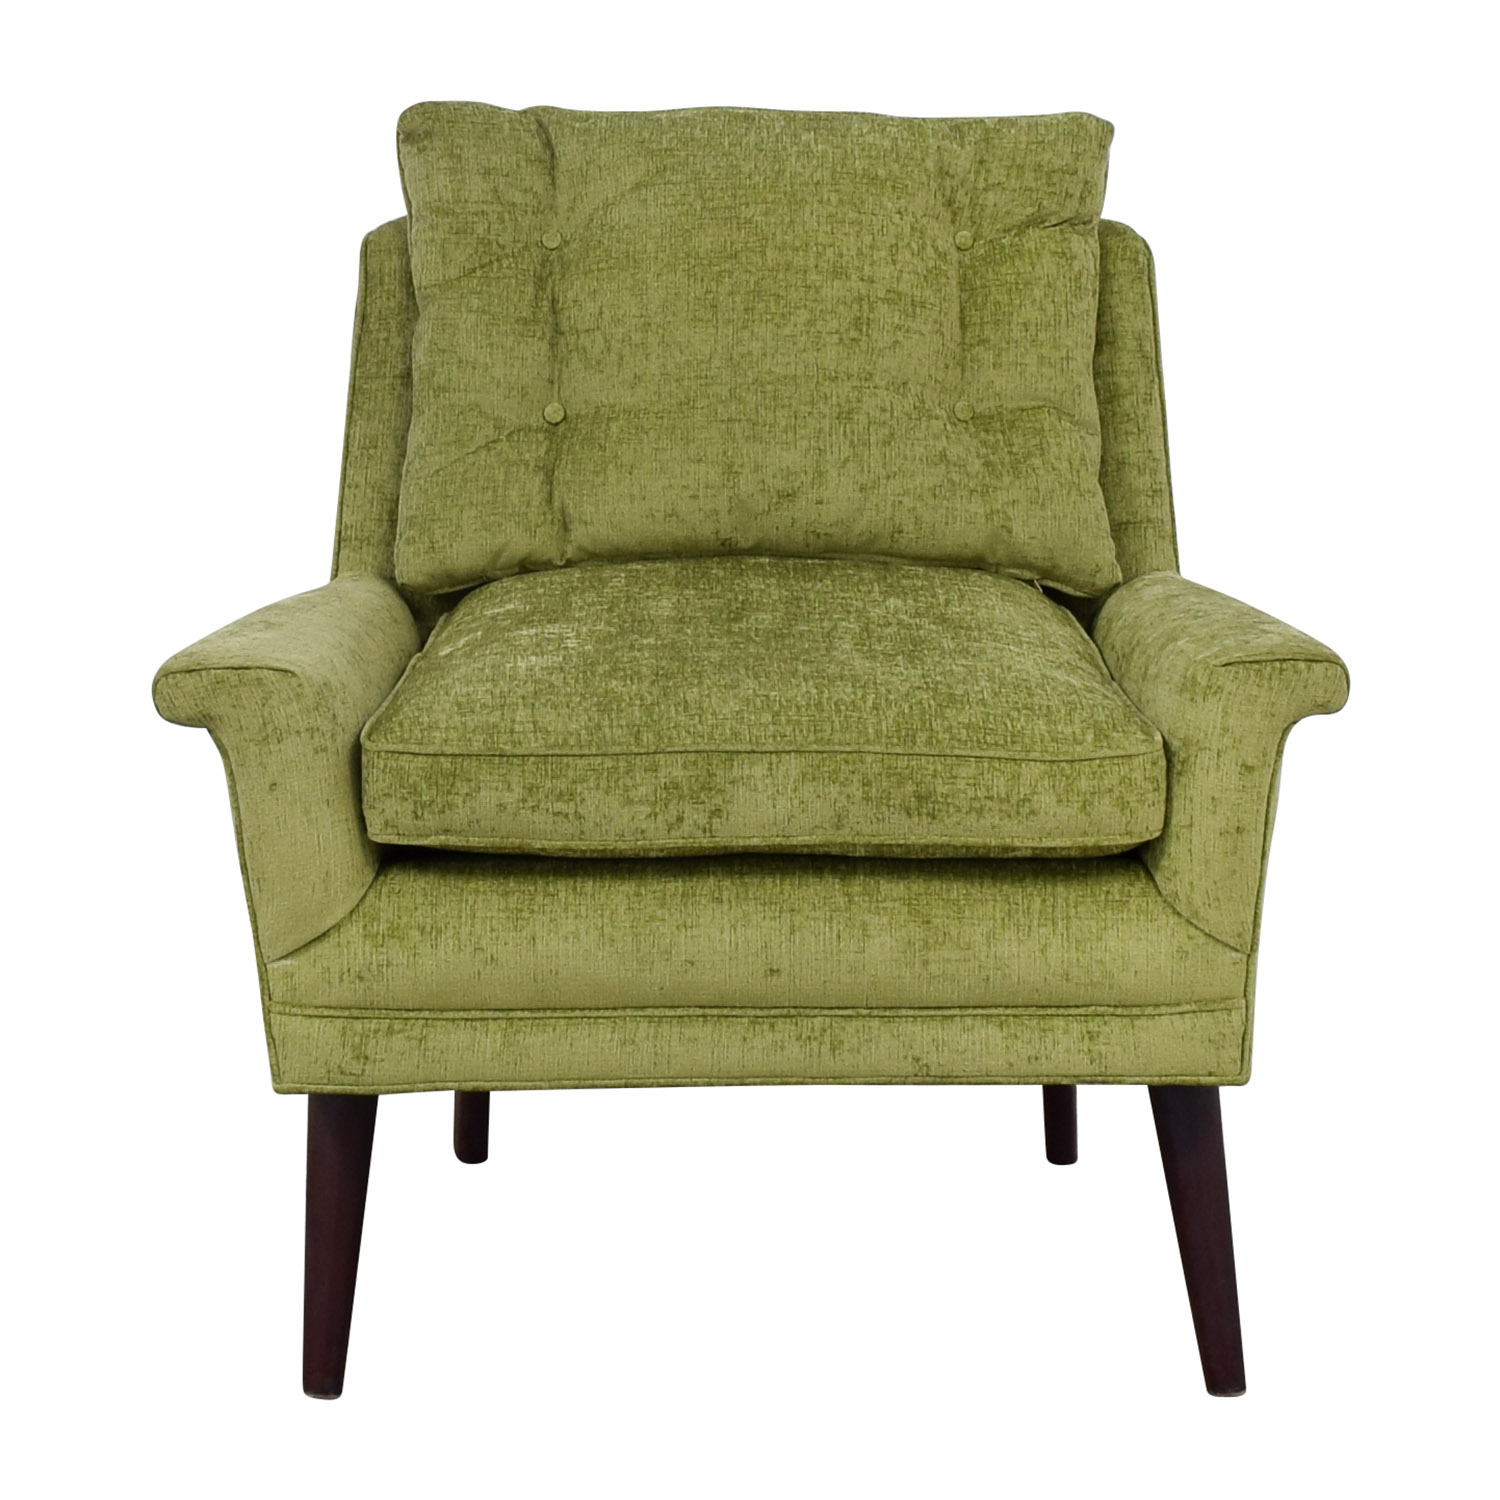 Stonebrook Interiors Mid Century Club Chair Stonebrook Interiors